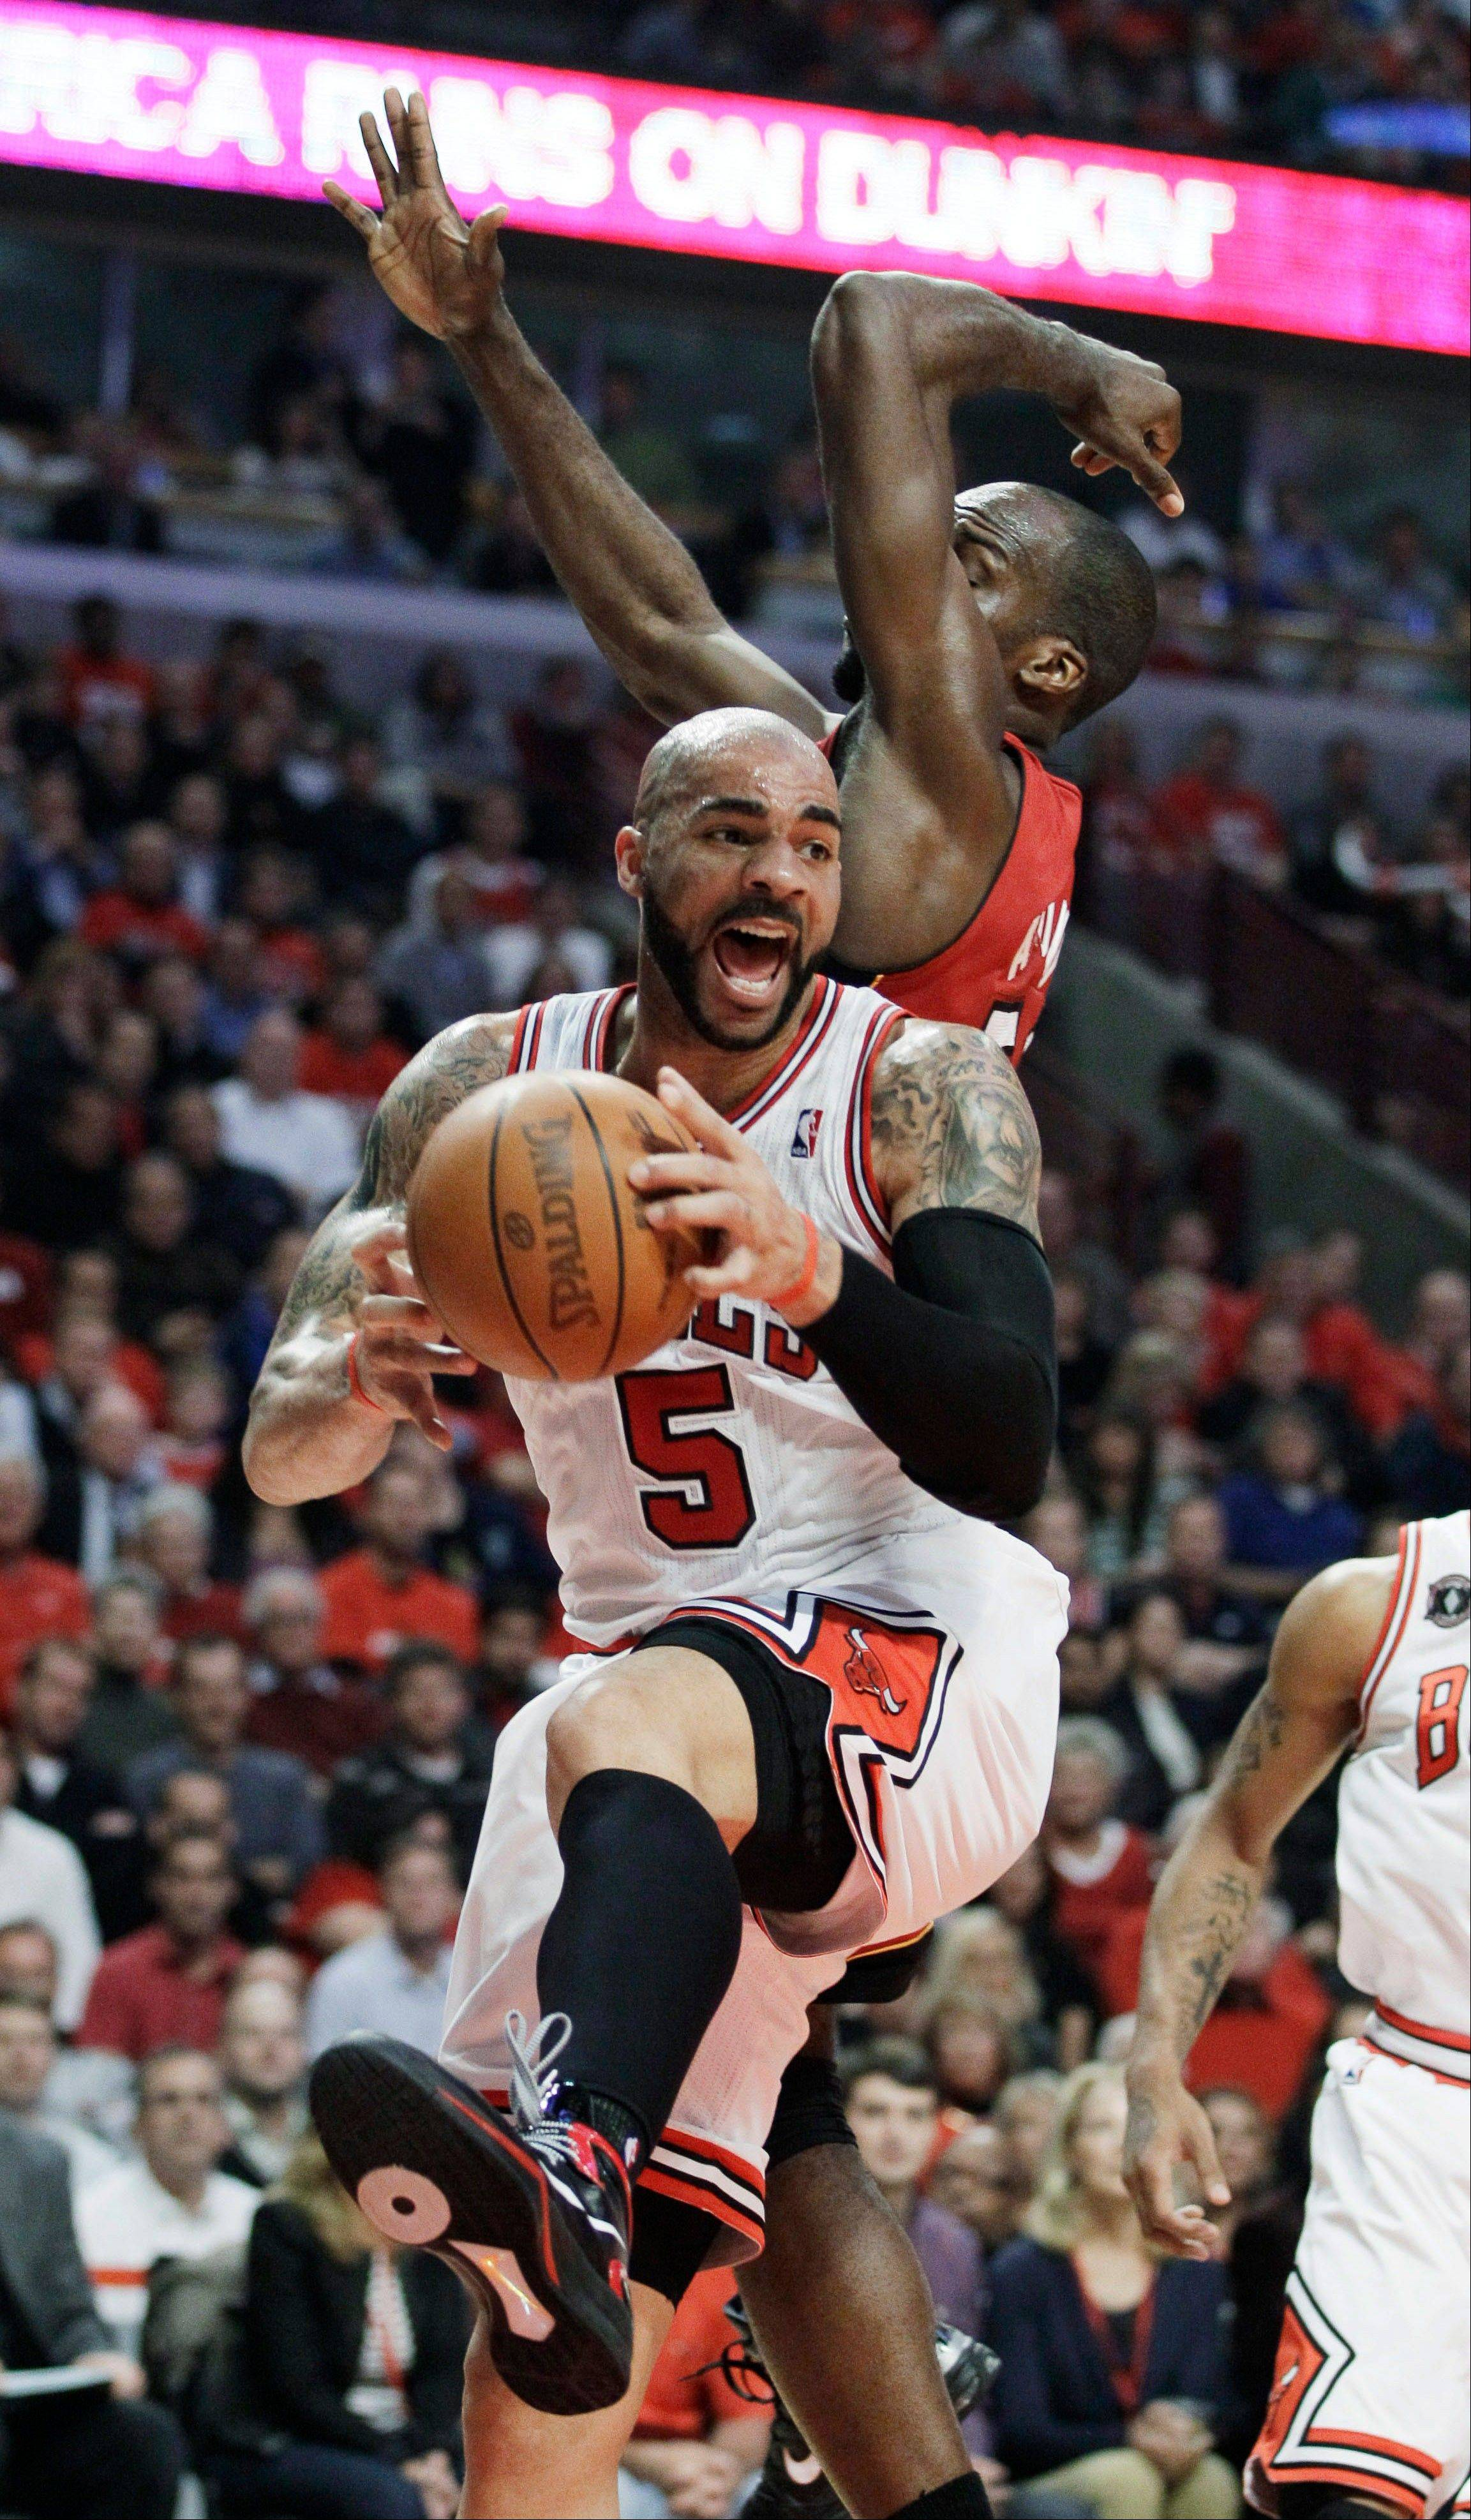 Carlos Boozer grabs a rebound against Miami Heat center Joel Anthony during the first quarter of Game 5 of the Eastern Conference finals Thursday.